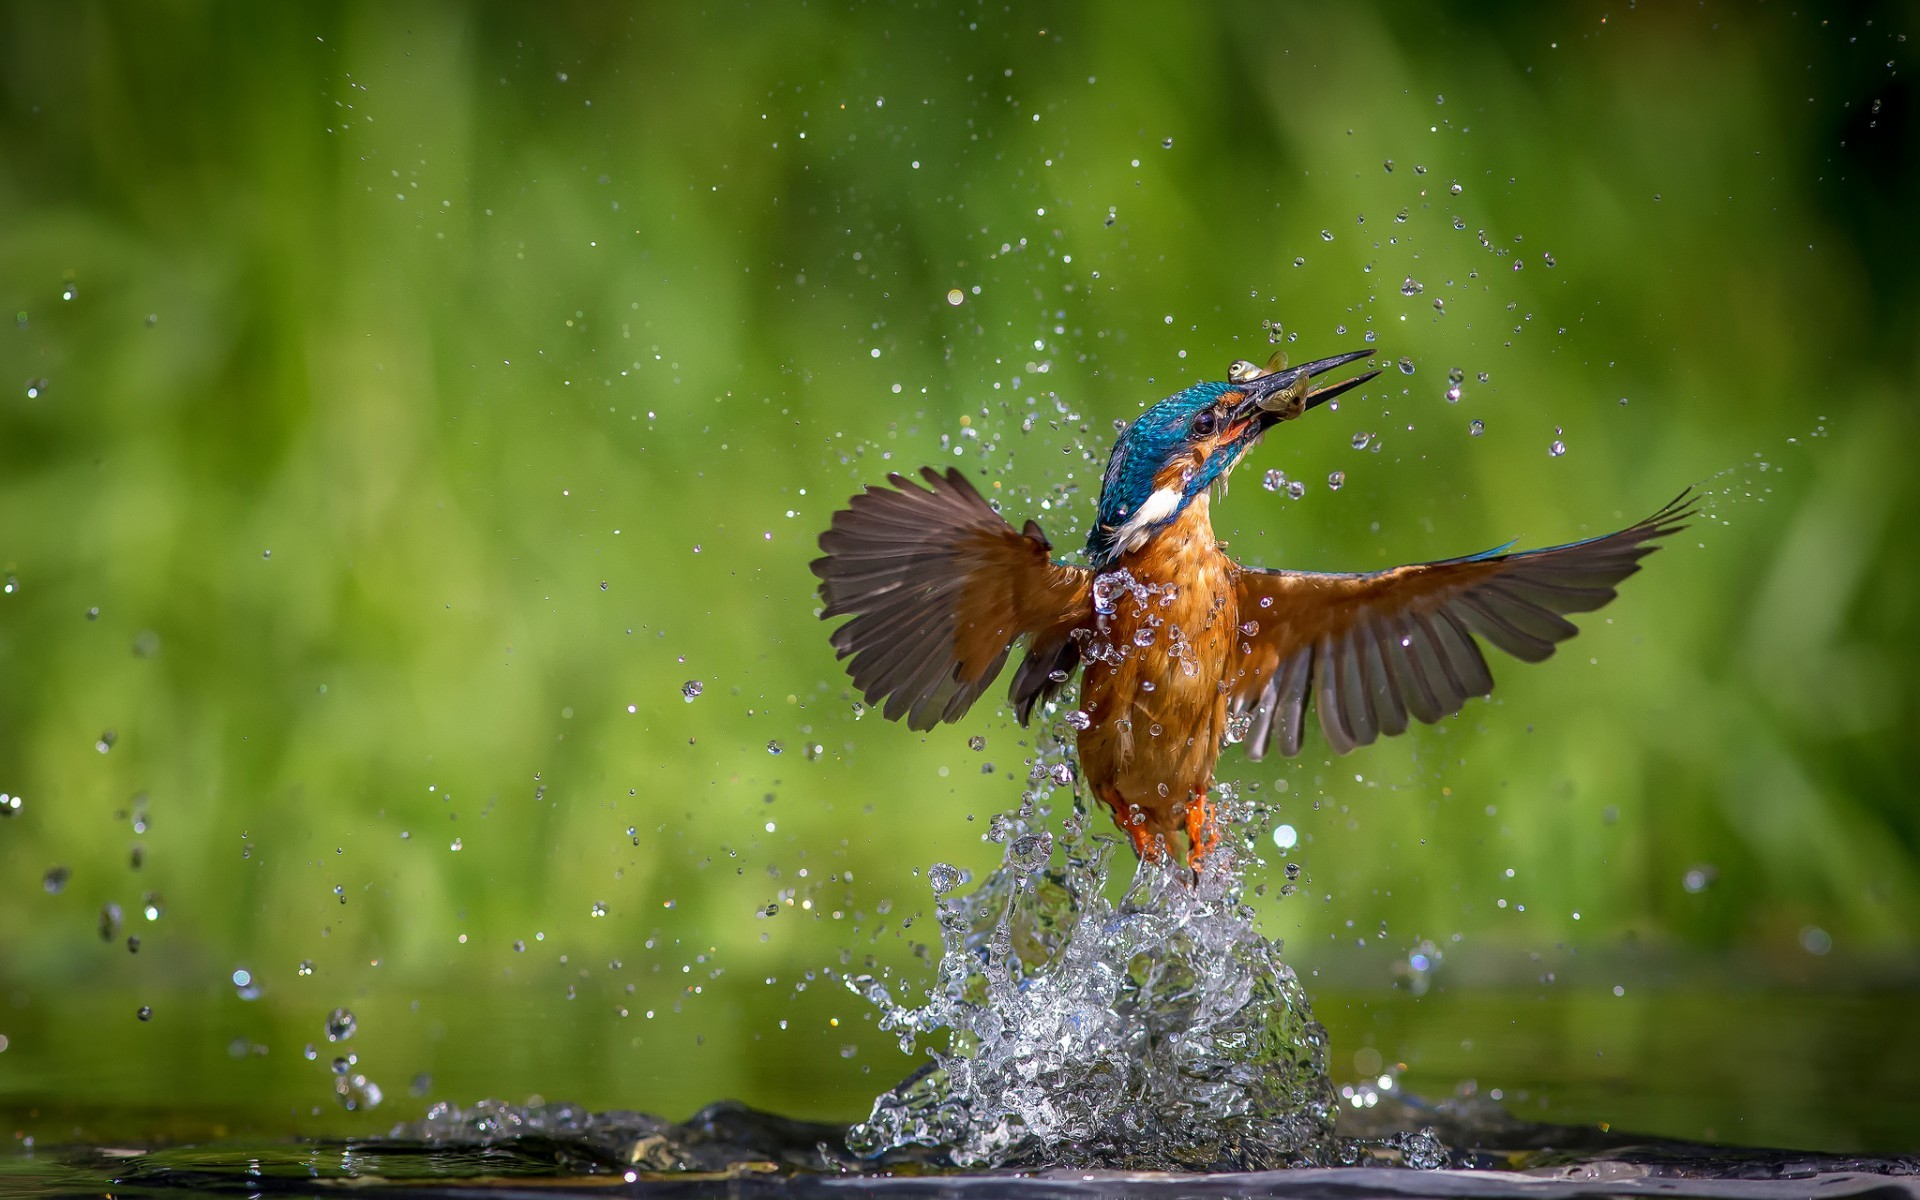 Kingfisher bird 1